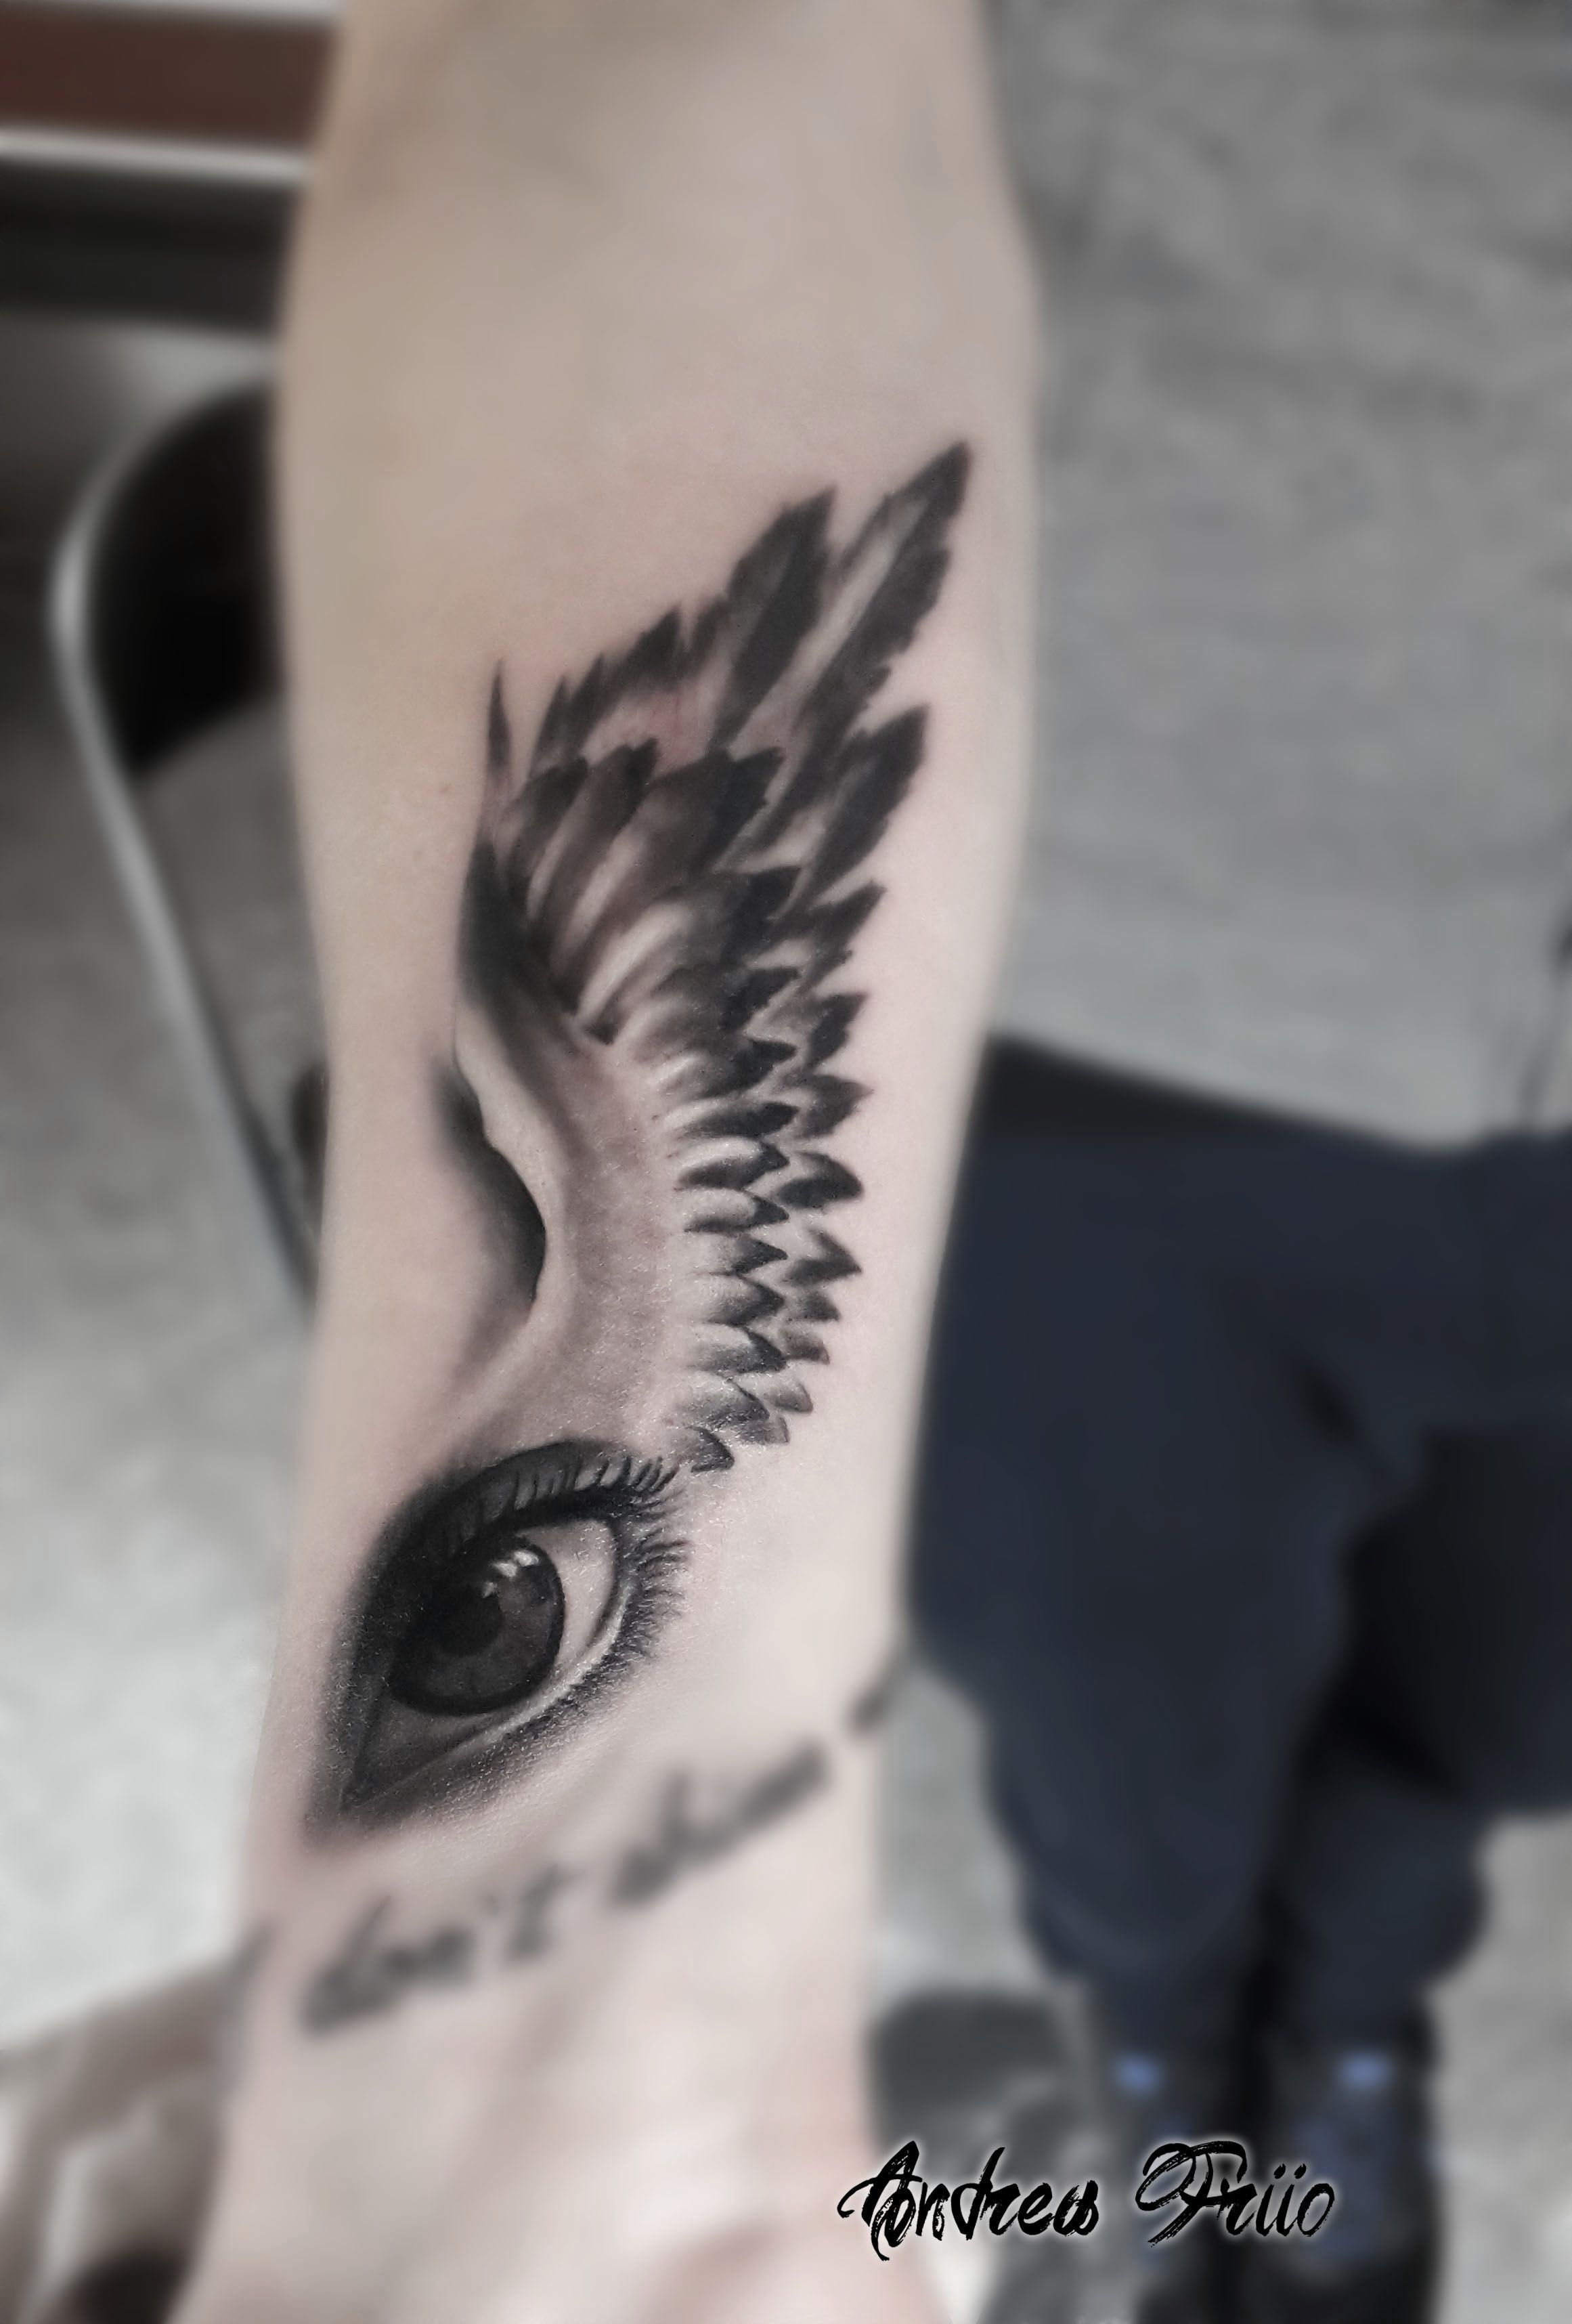 black and grey tattoo eye tattoo wings tattoo Tatuaggi